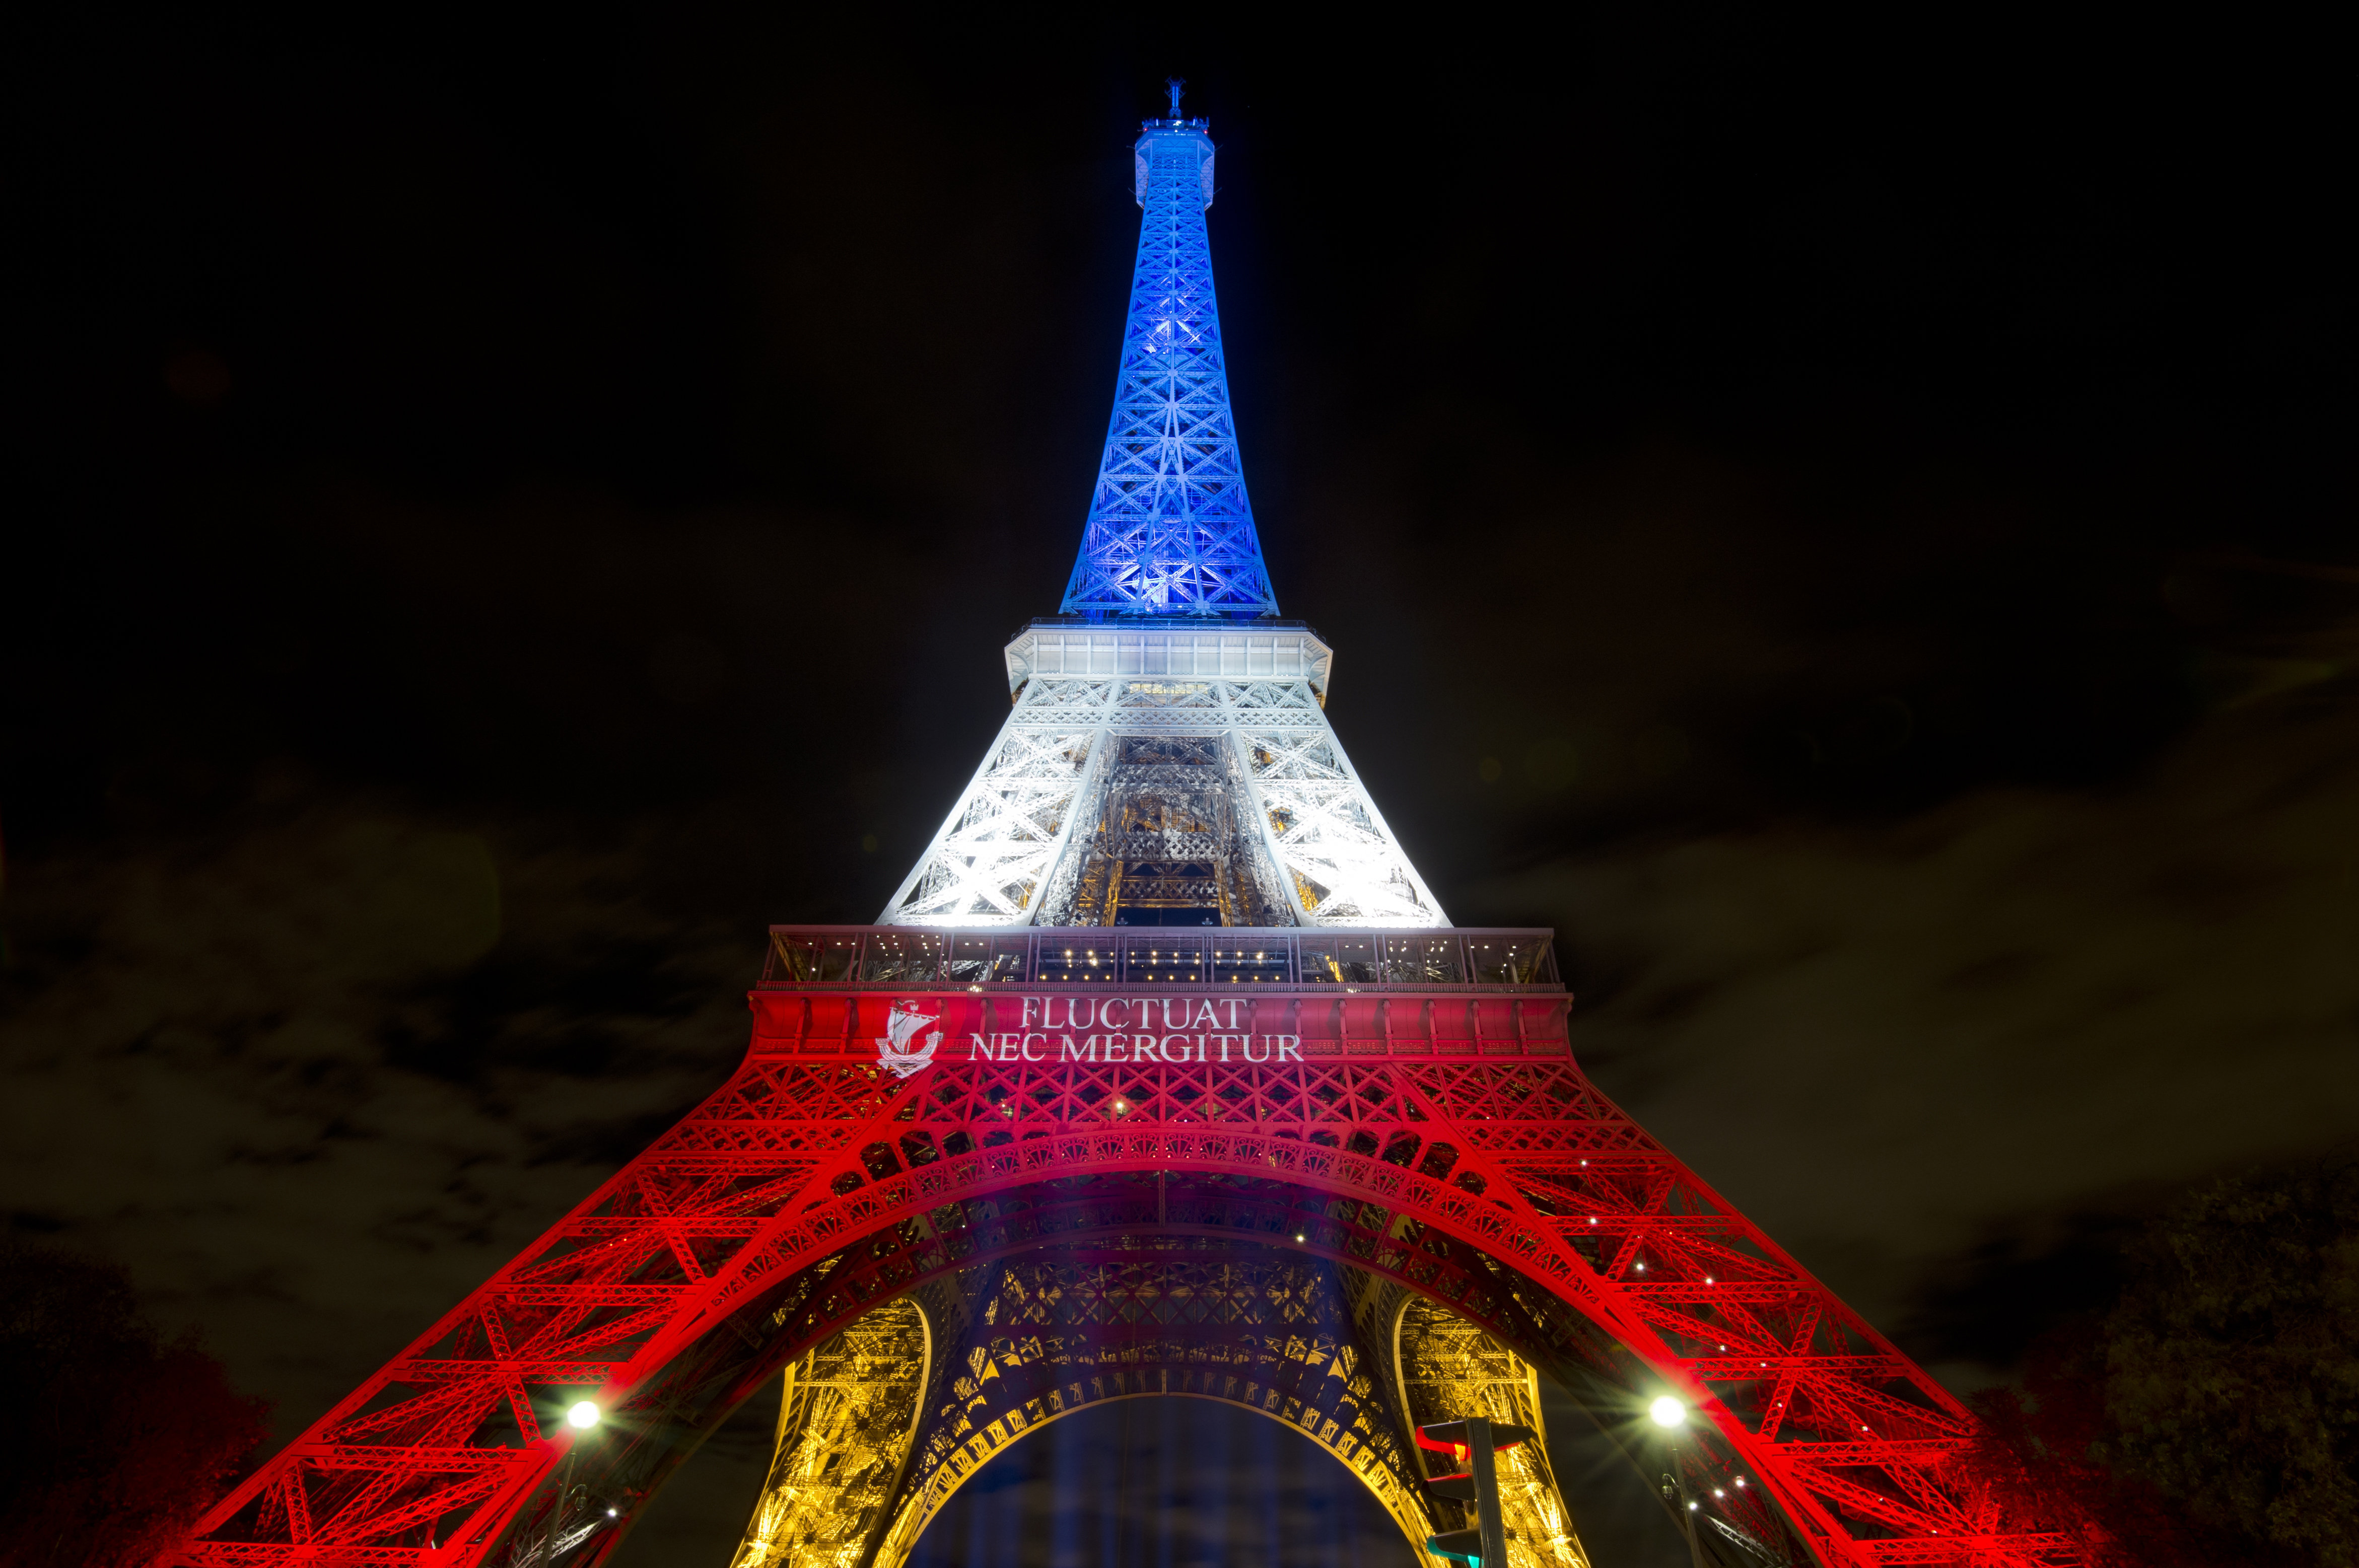 A photo taken on November 17, 2015 in Paris shows the Eiffel Tower illuminated with the colors of the French national flag in tribute to the victims of the November 13 Paris terror attacks.